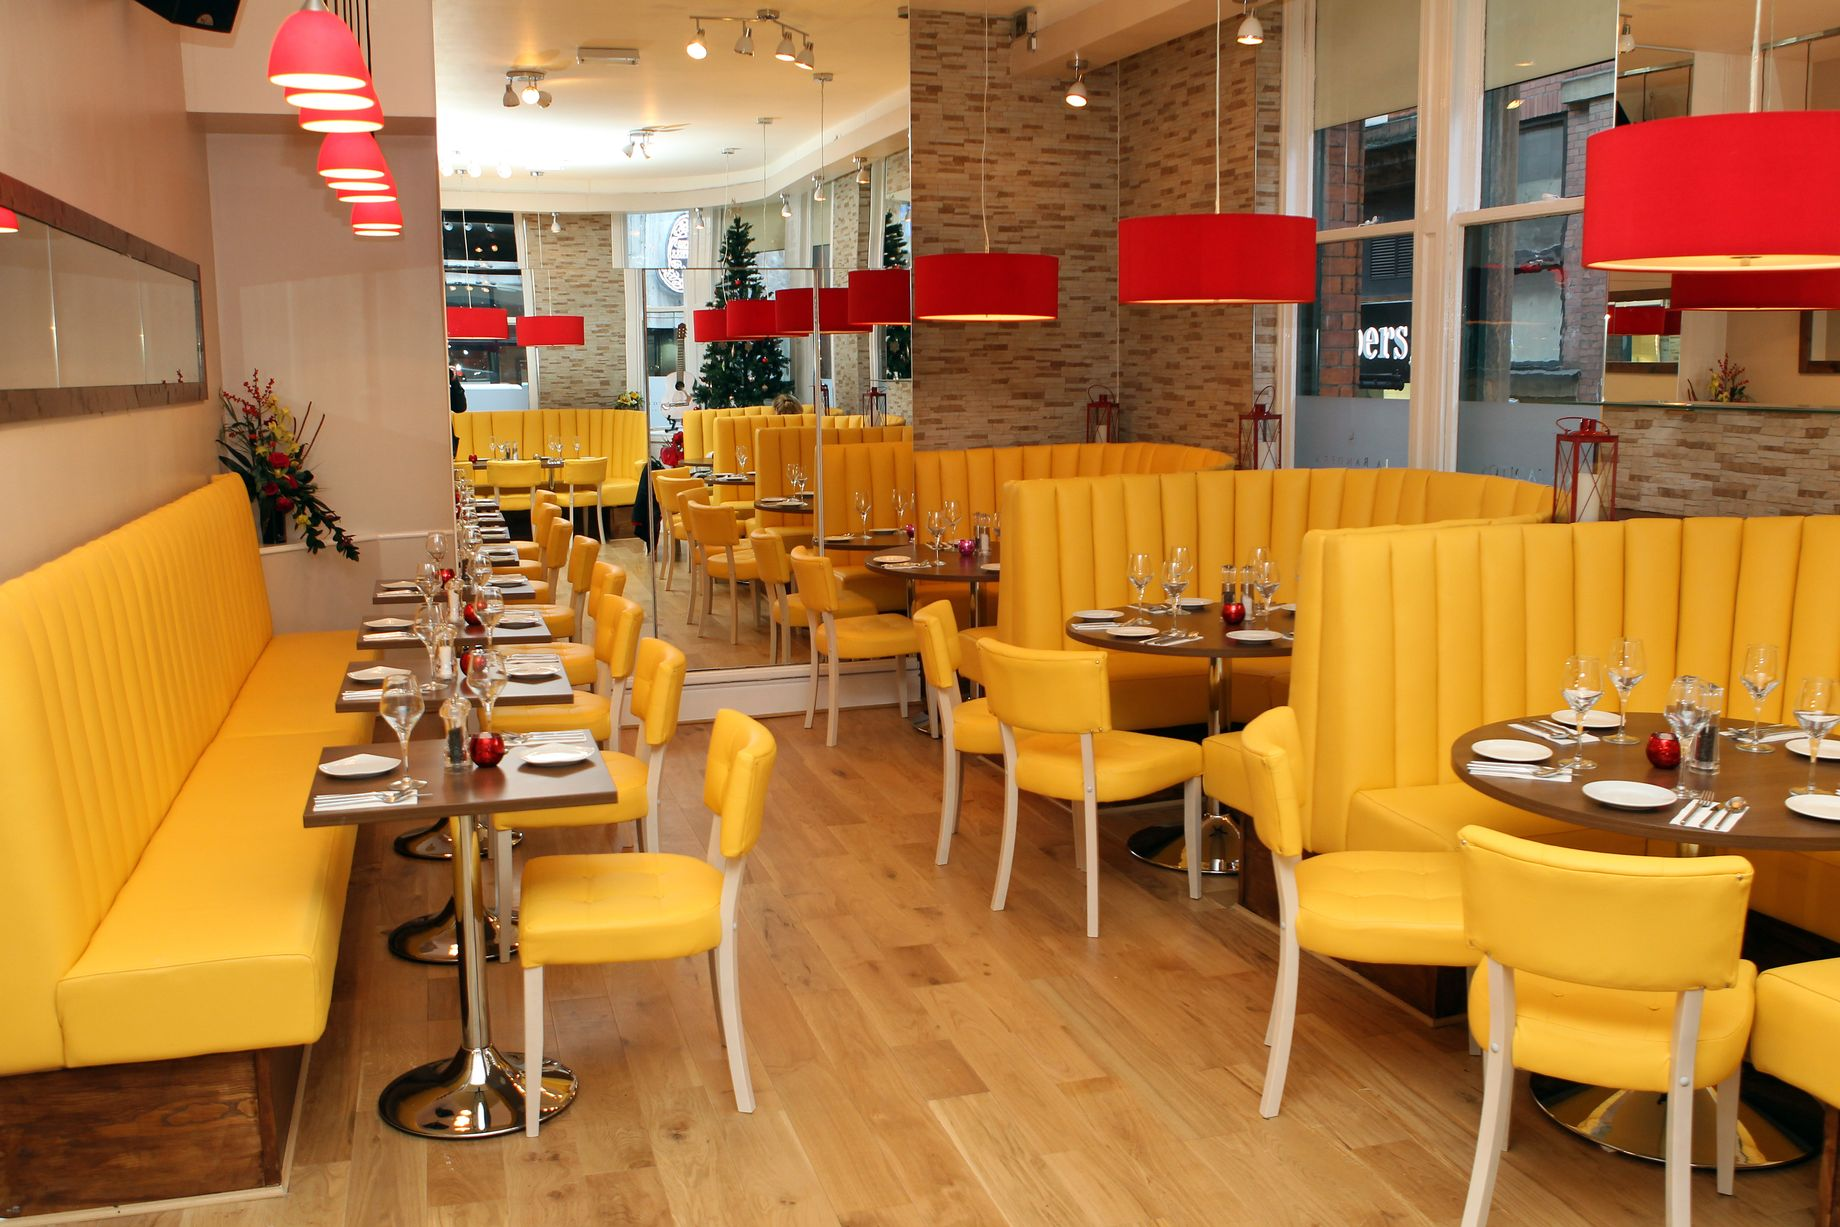 banquette seating in a restaurant